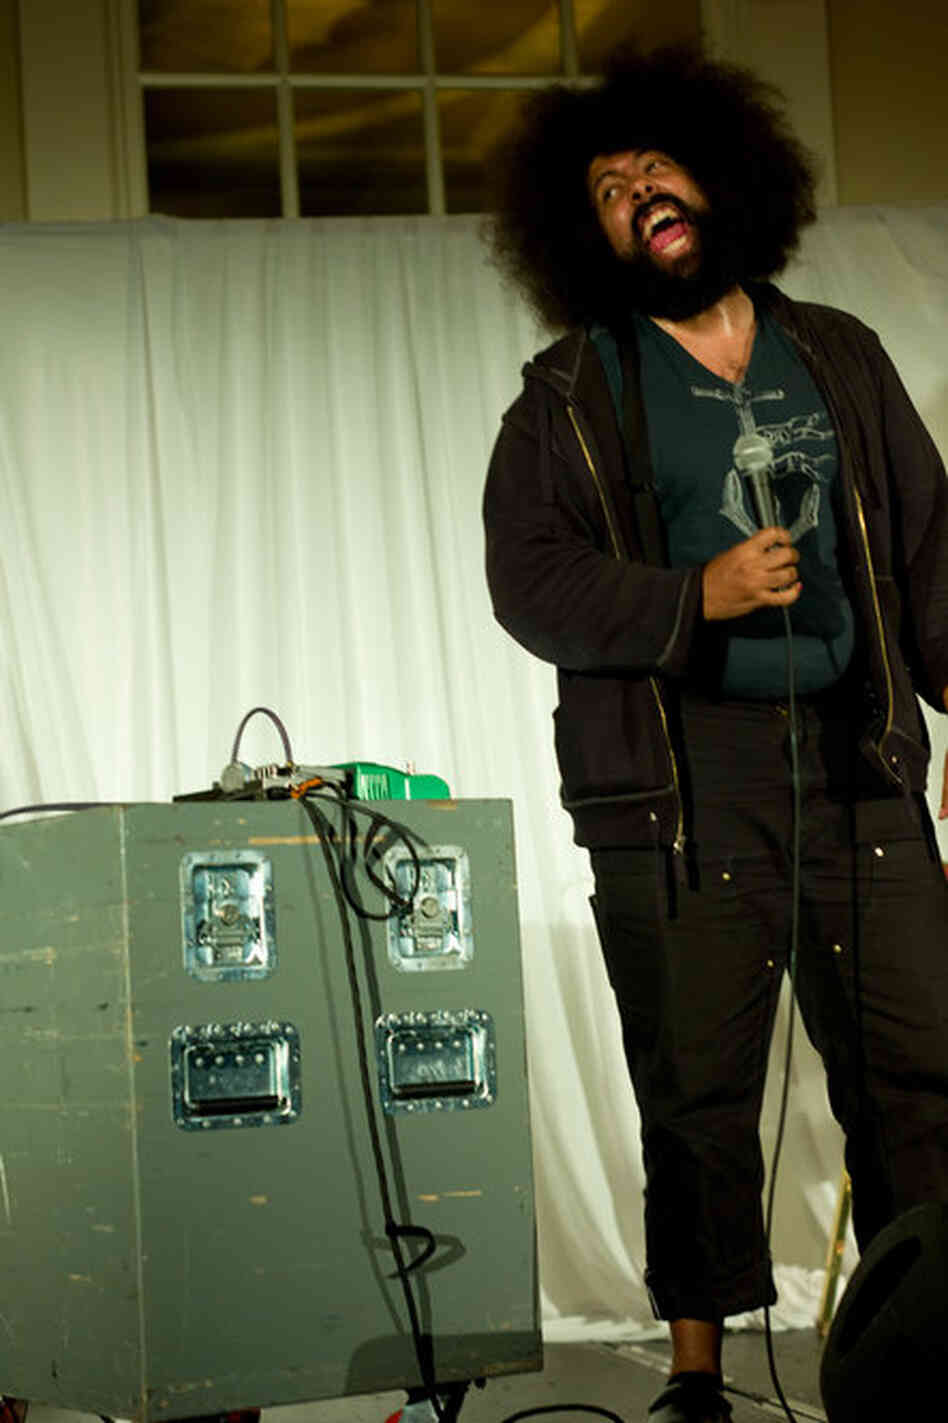 Reggie Watts improvised wordless musical impressions of soul and French music between stream-of-consciousness ramblings at the Berkeley Hotel on Friday night.